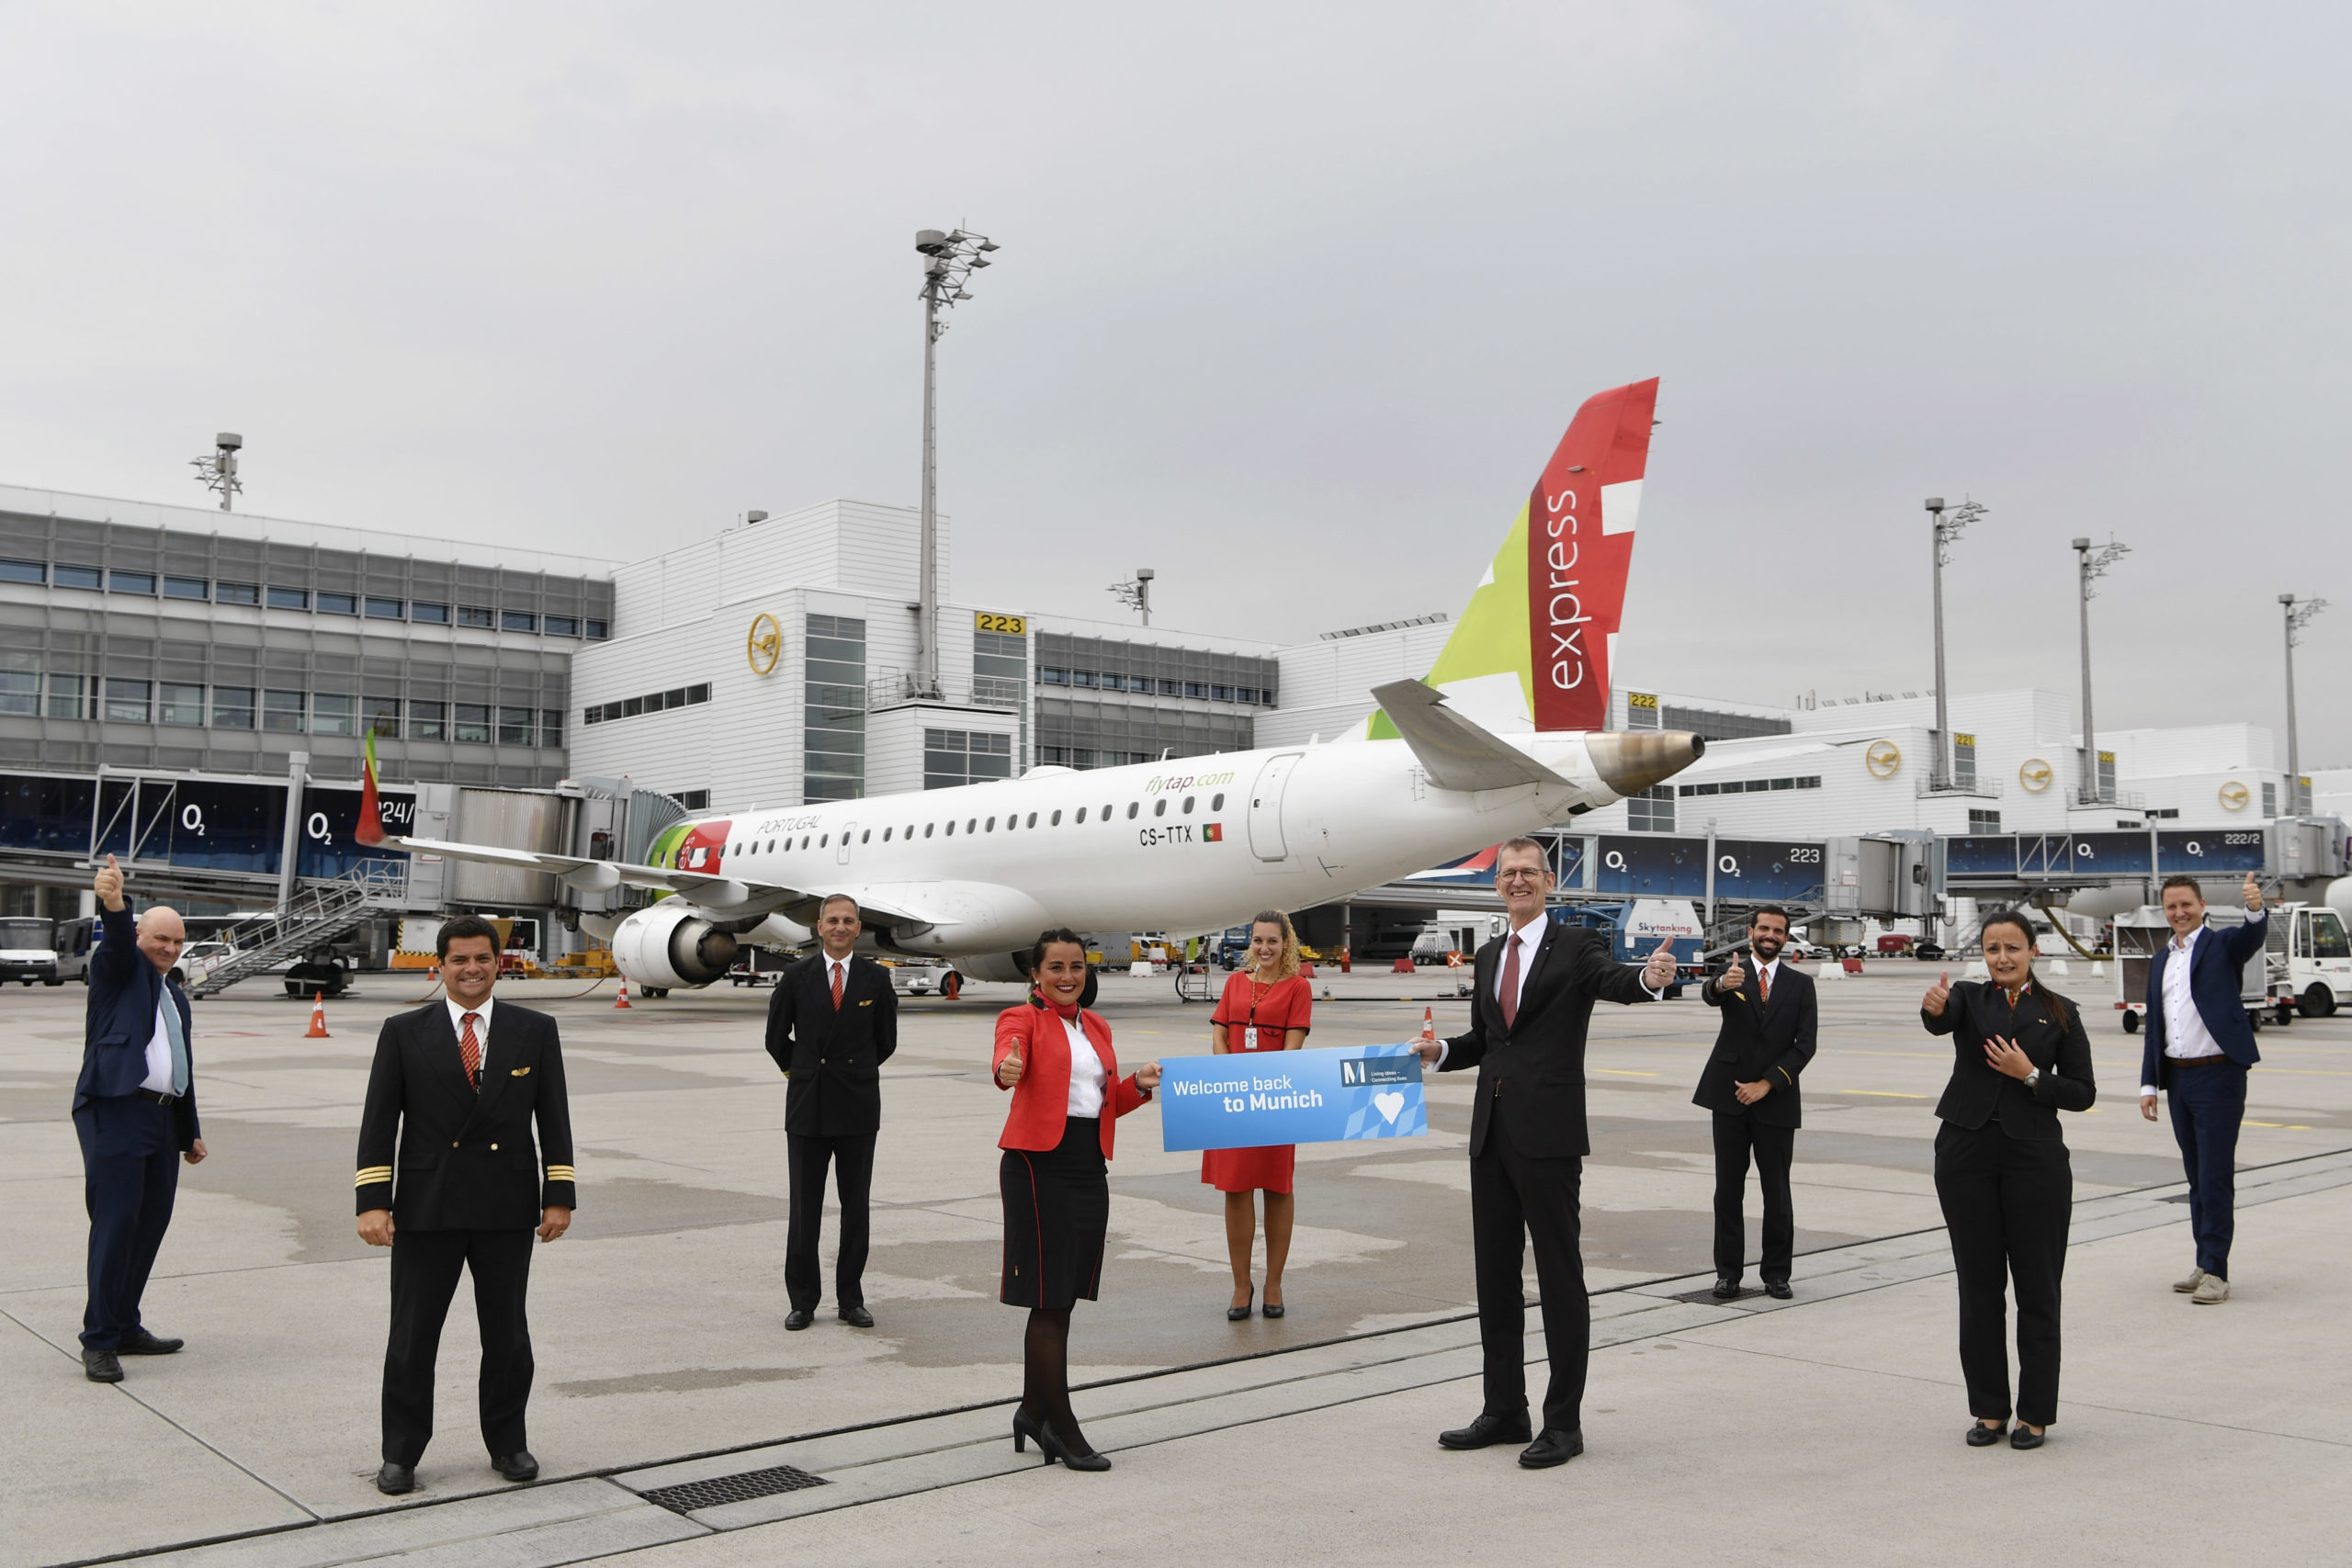 TAP Air Portugal resumes flights from Munich to Lisbon